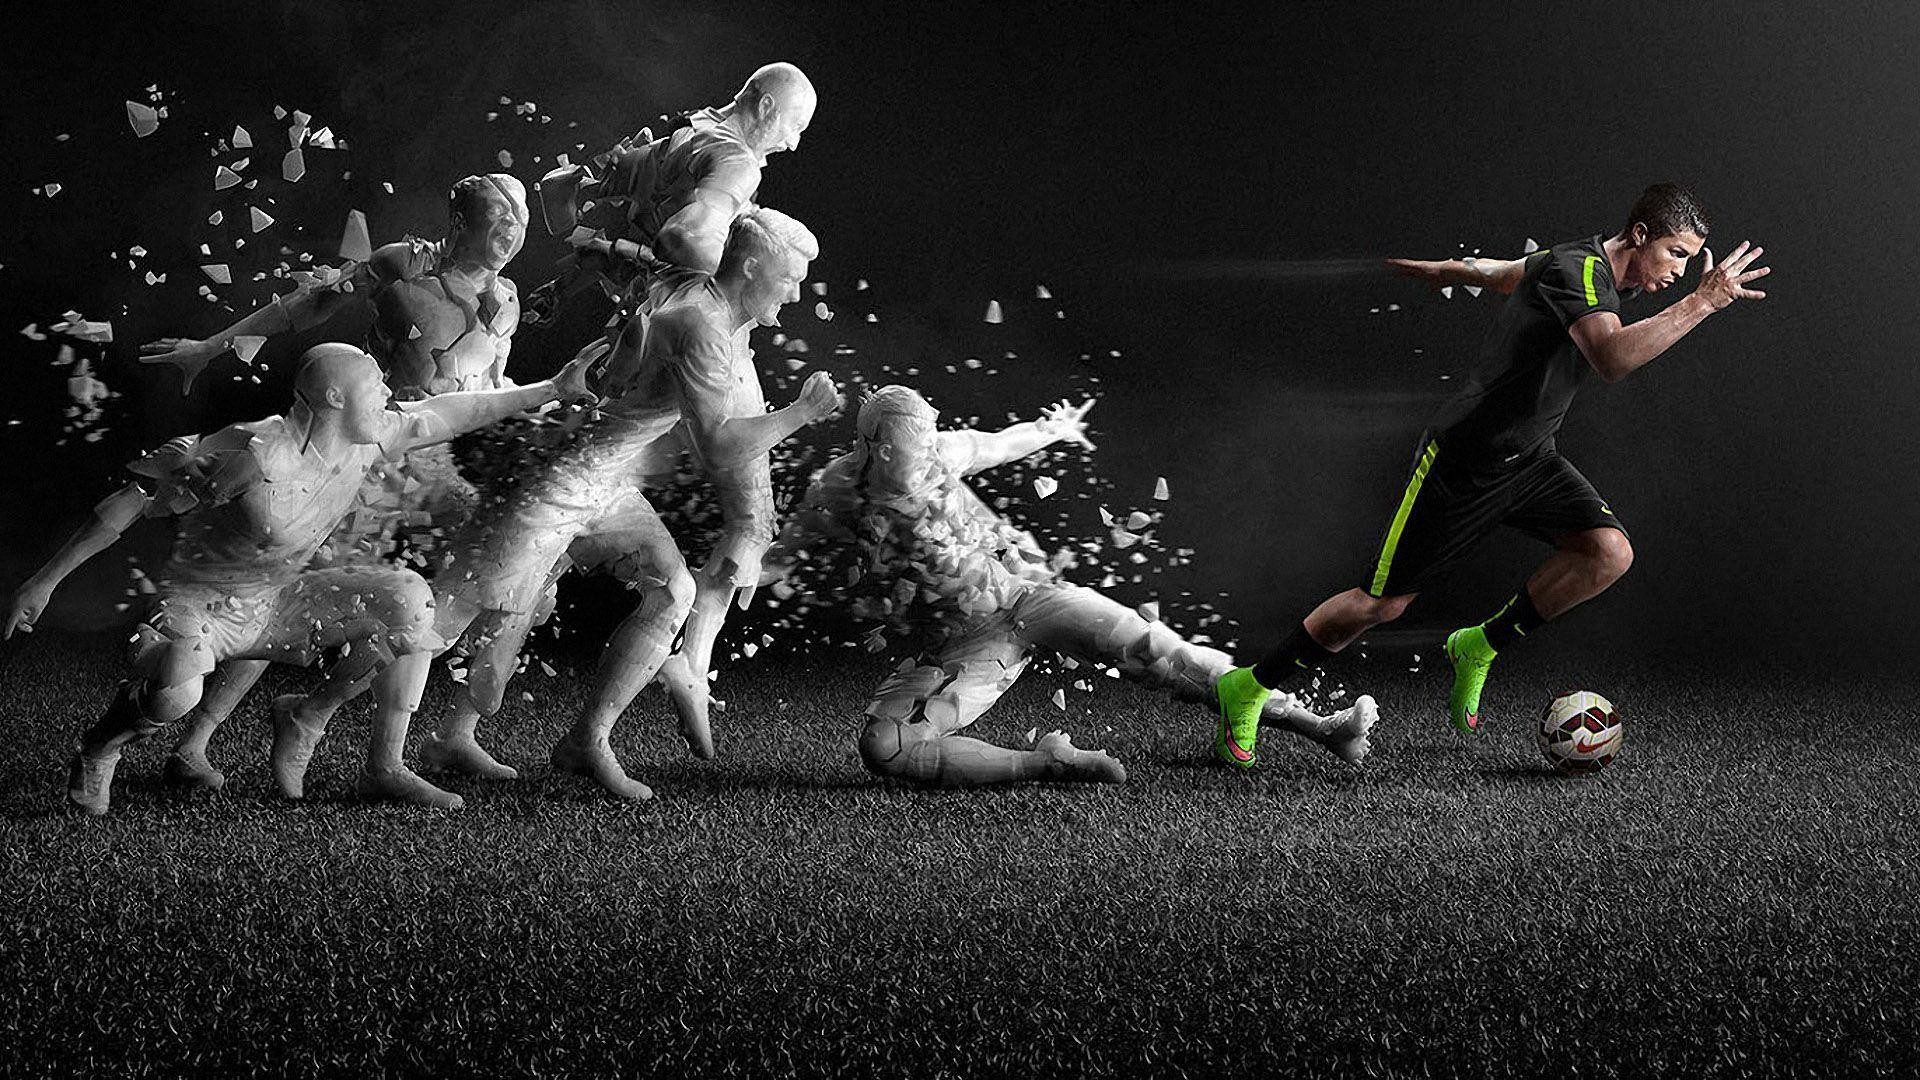 1920x1080 Cristiano Ronaldo Nike Mercurial Superfly Electric Green Boots .